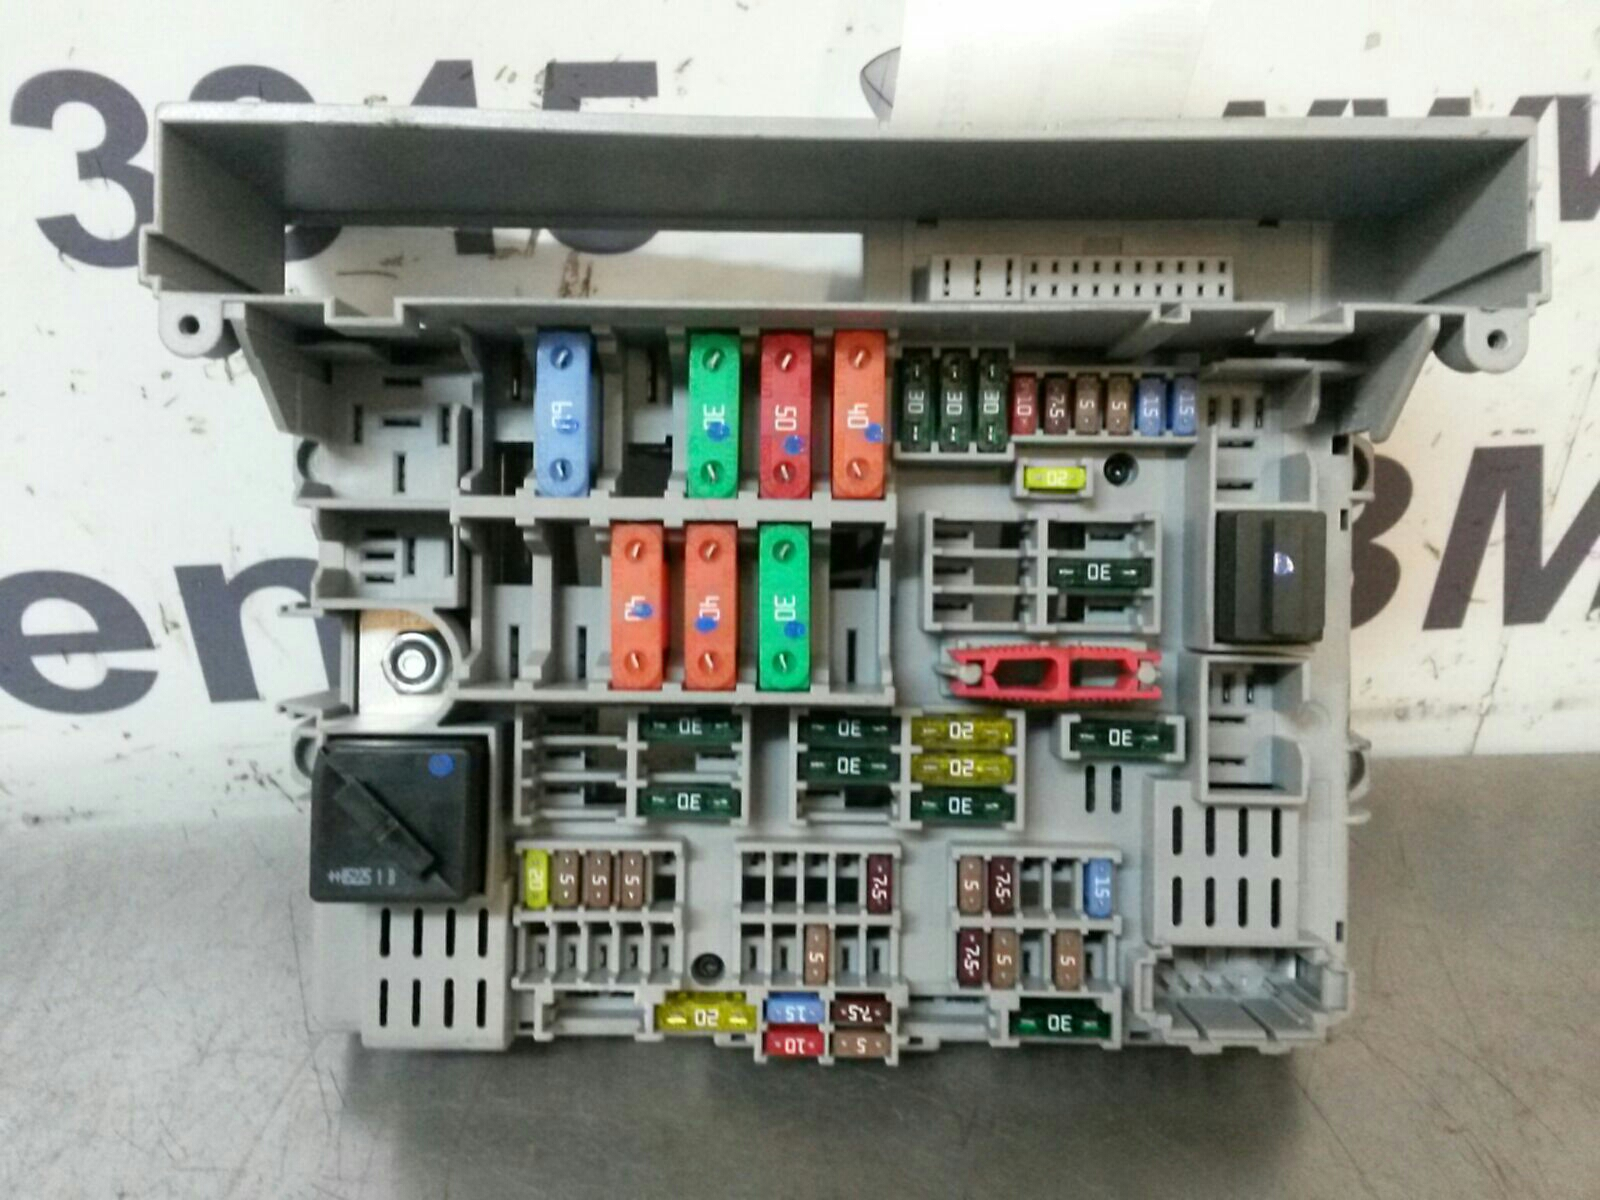 2007 Bmw 3 Series Fuse Box Trusted Wiring Diagram 2002 BMW 530I Fuse  Diagram 1995 Bmw 525i Fuse Box Location